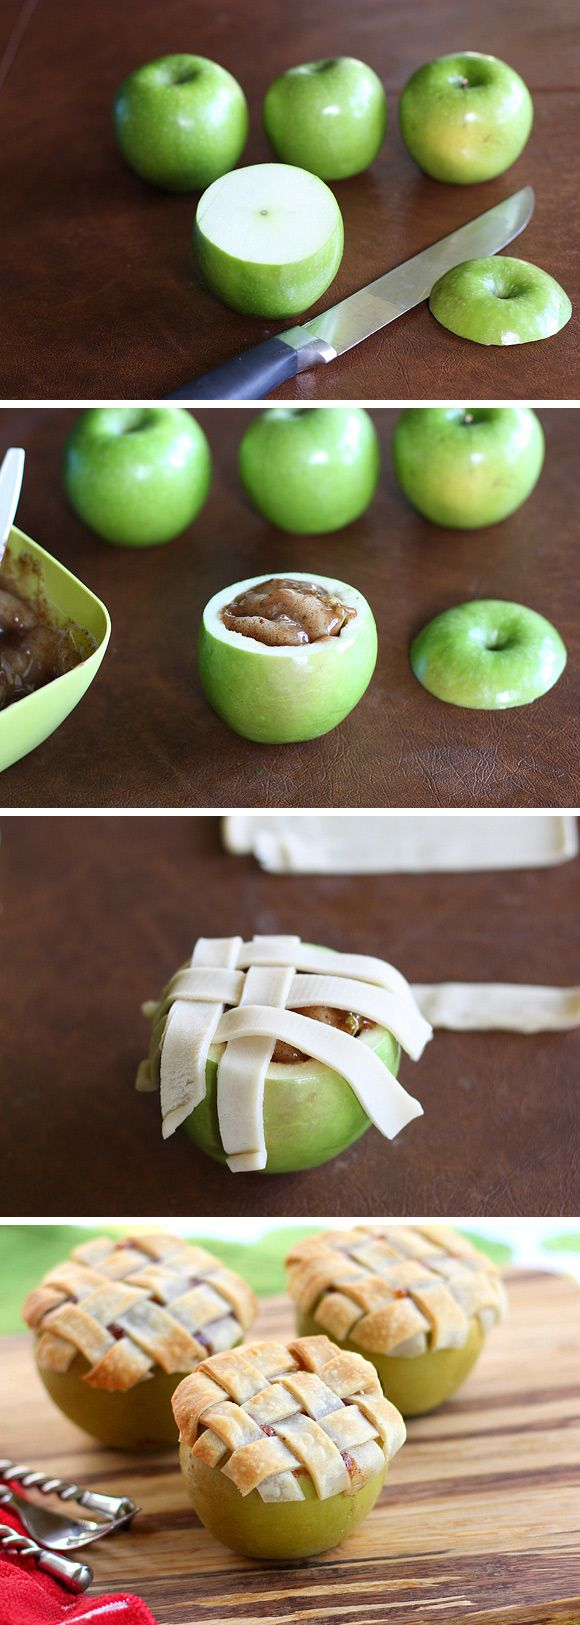 So trying this!! Mini apple pies with lattice crusts, baked inside apples. Ever see anything cuter than this?